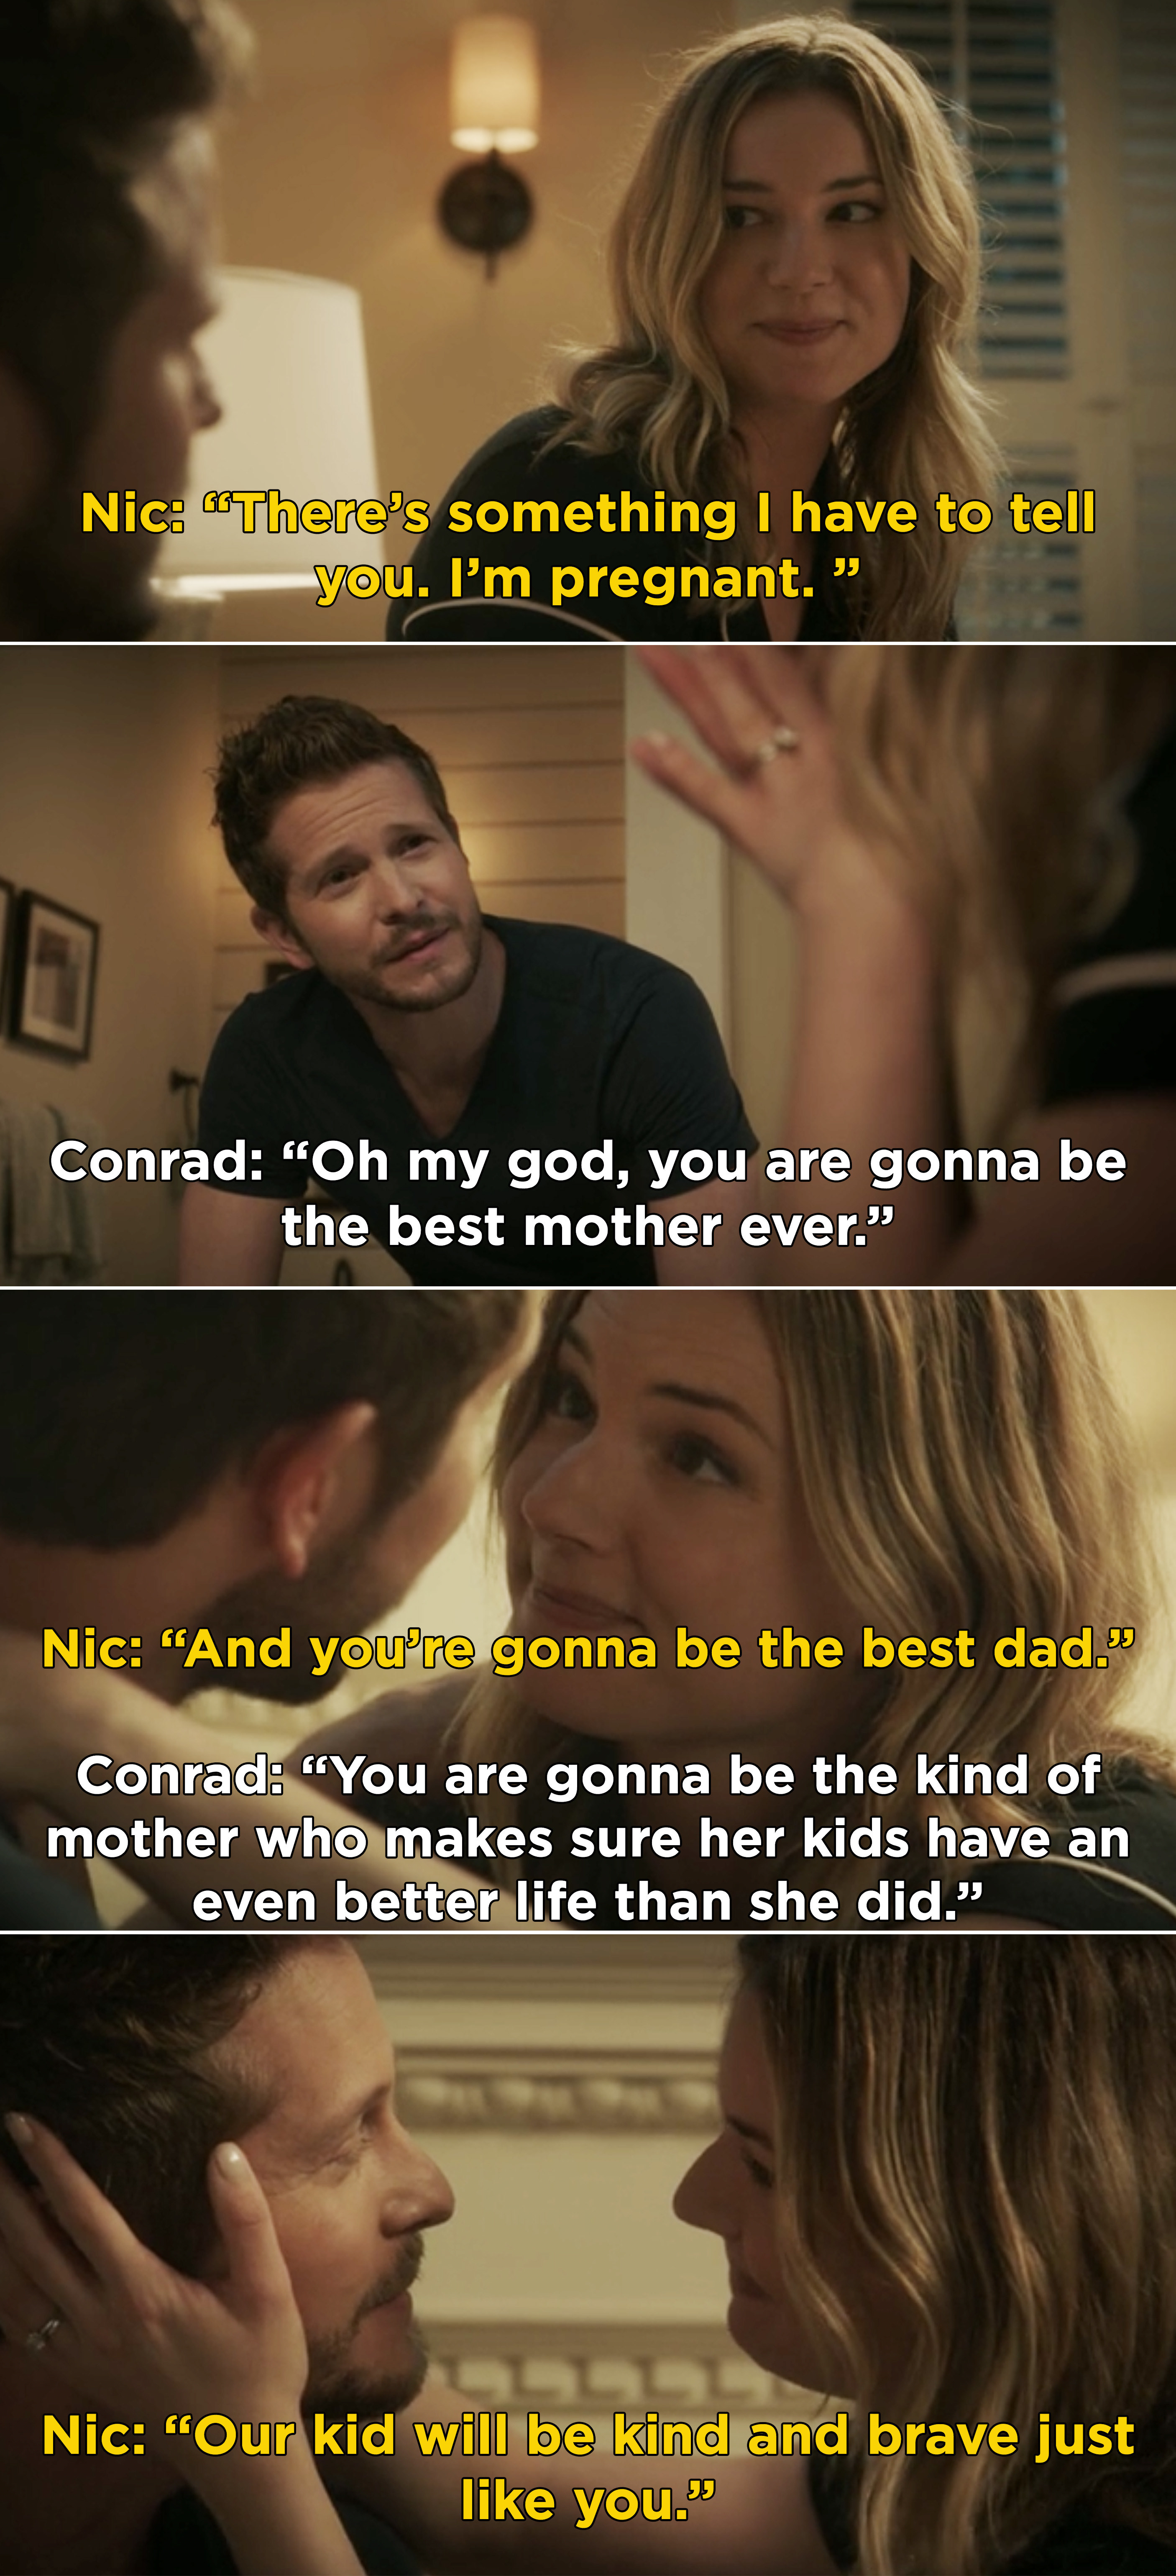 """Conrad telling Nic that she's going to be the best mother because she'll make sure their kids have a better life and Nic saying, """"Our kid will be kind and brave just like you"""""""